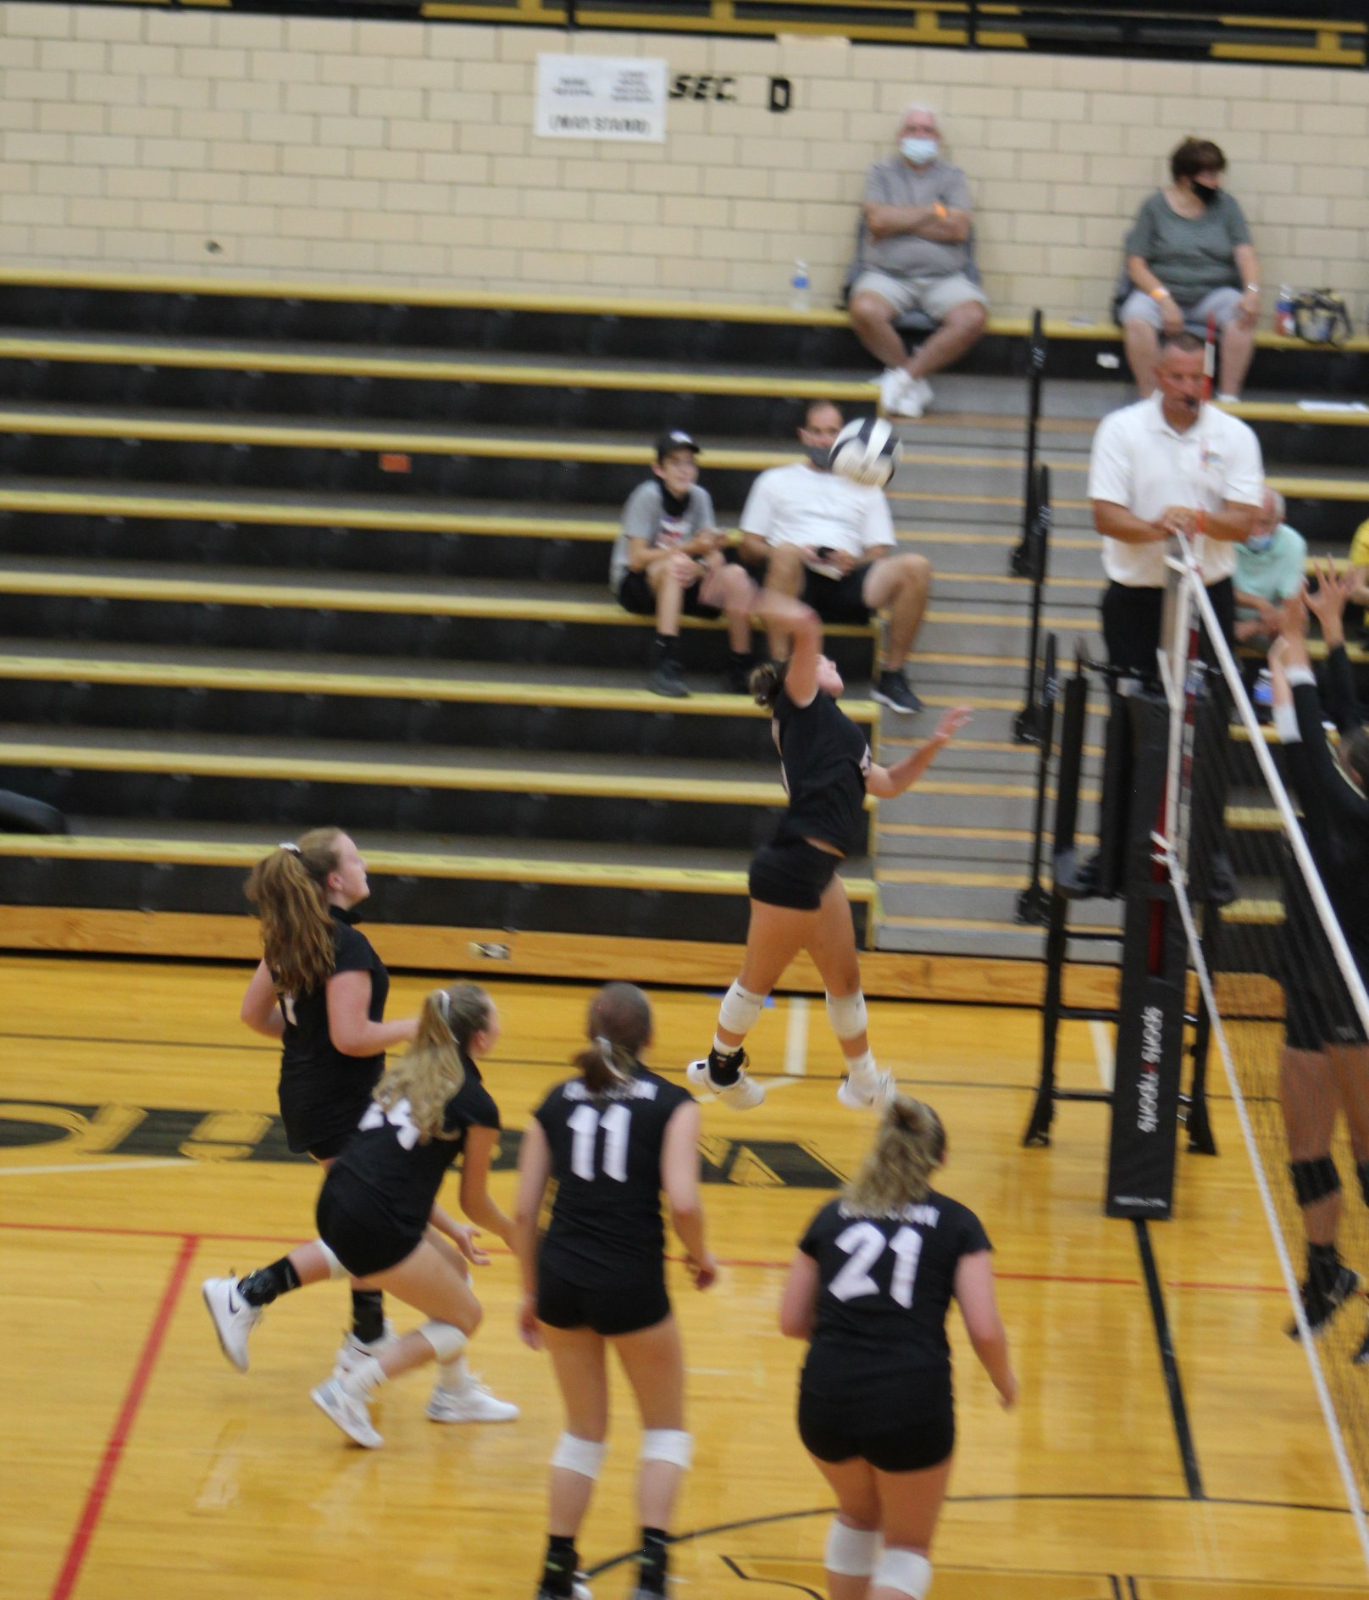 KHS wins 3-0 at Winchester